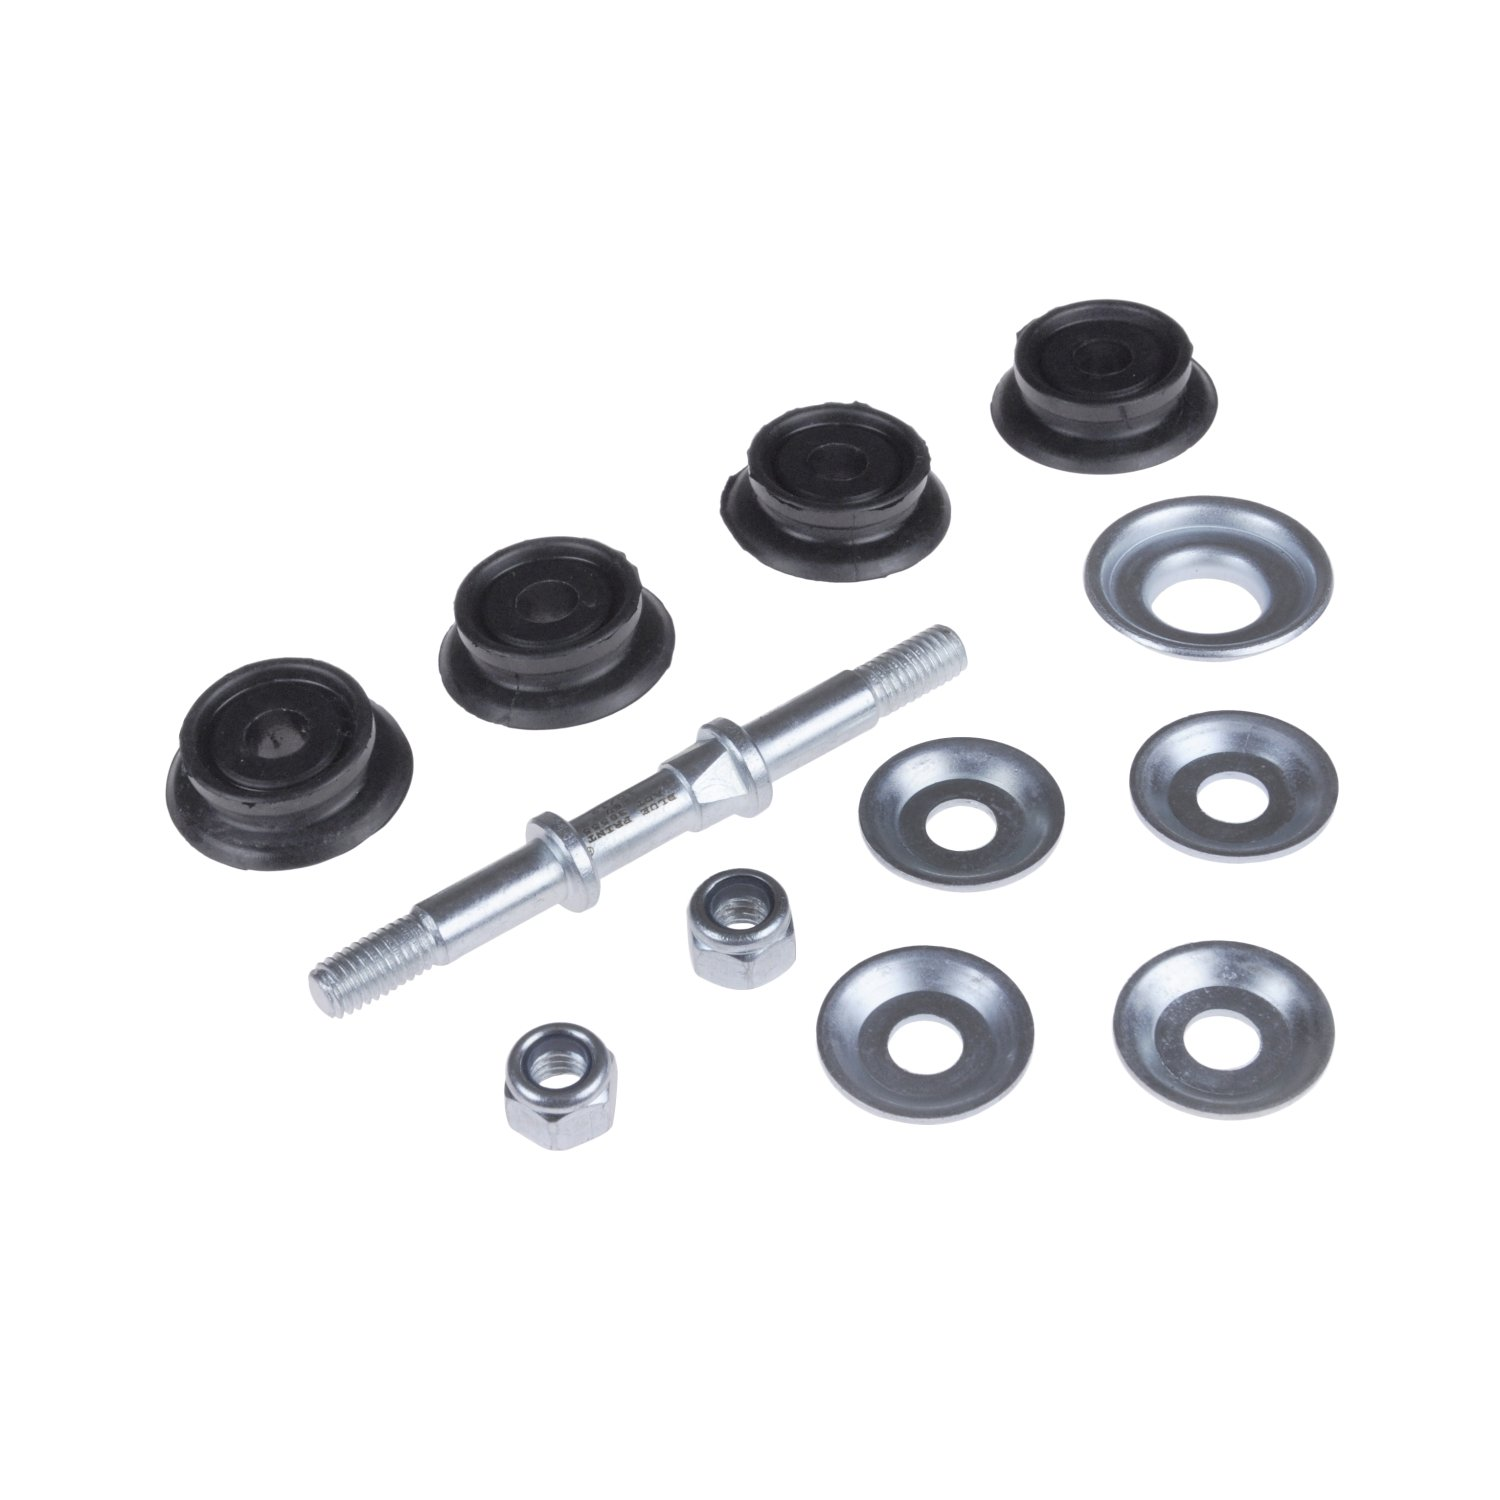 Blue Print ADT38555 stabiliser link with bushes, washers and nuts  - Pack of 1 Automotive Distributors Limited